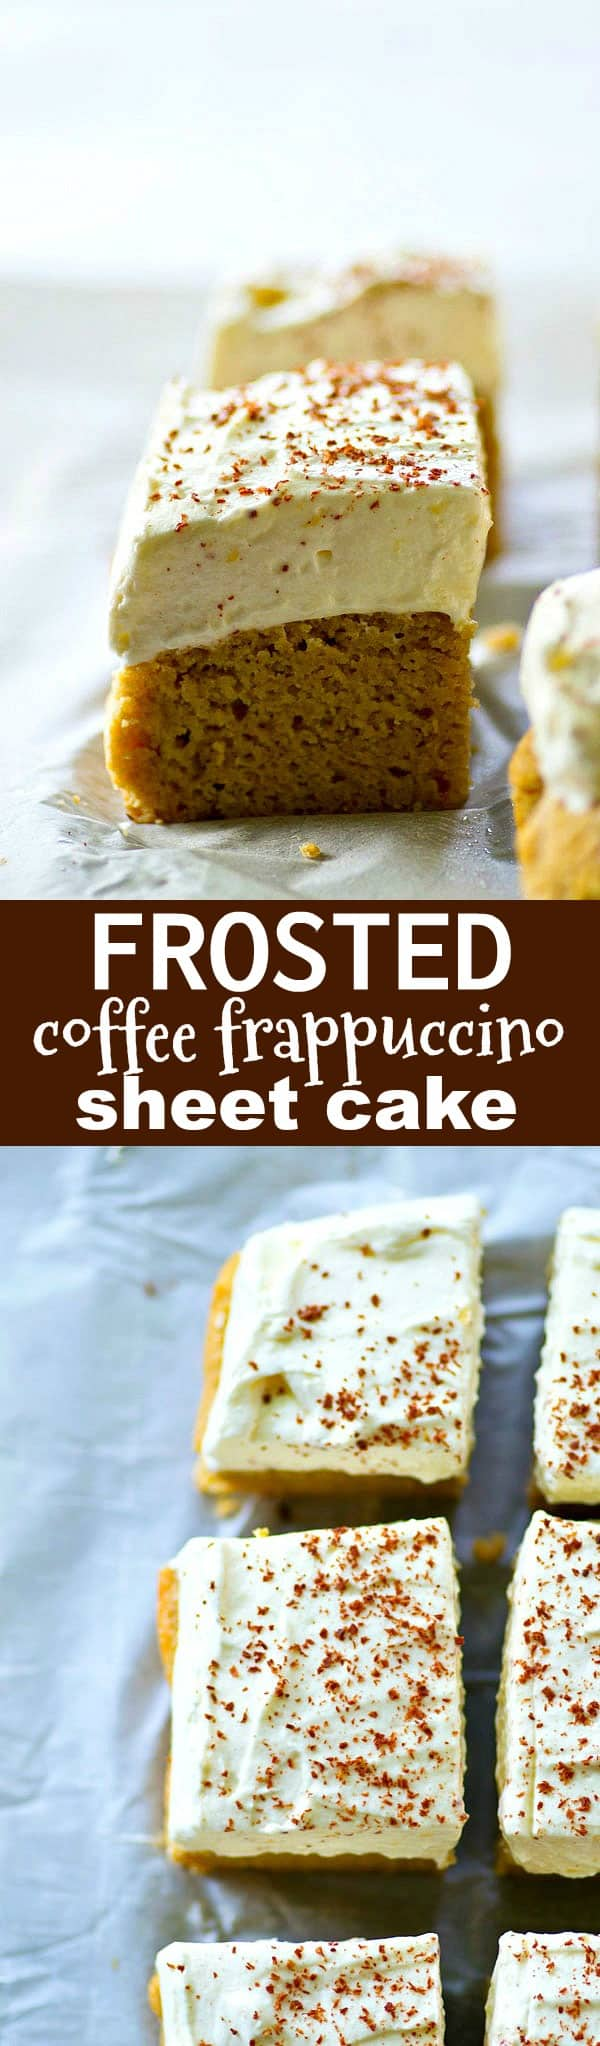 Coffee lovers are going to ADORE this frosted coffee frappuccino sheet cake! It's big on the coffee flavor and frosted high with a whipped cream cheese frosting. (gluten-free and THM-friendly)